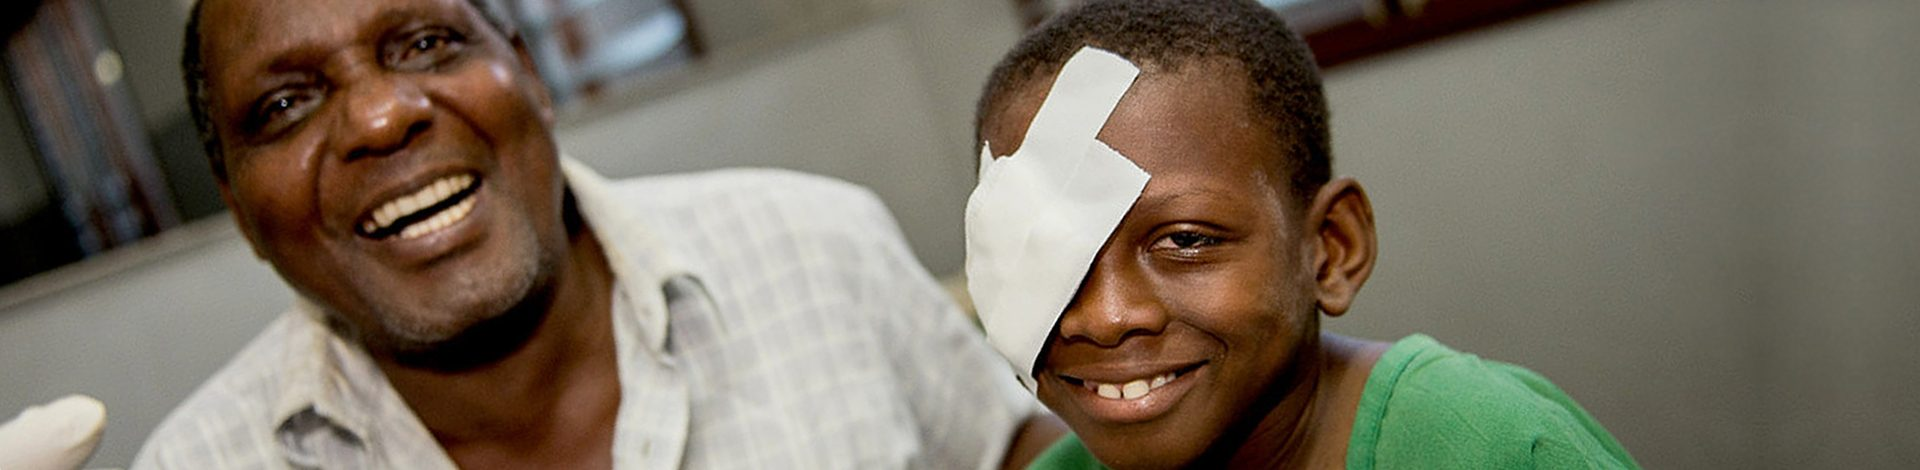 Omari and his father, Amiri can't stop smiling as a doctor comes and removes the bandages after cataract surgery.